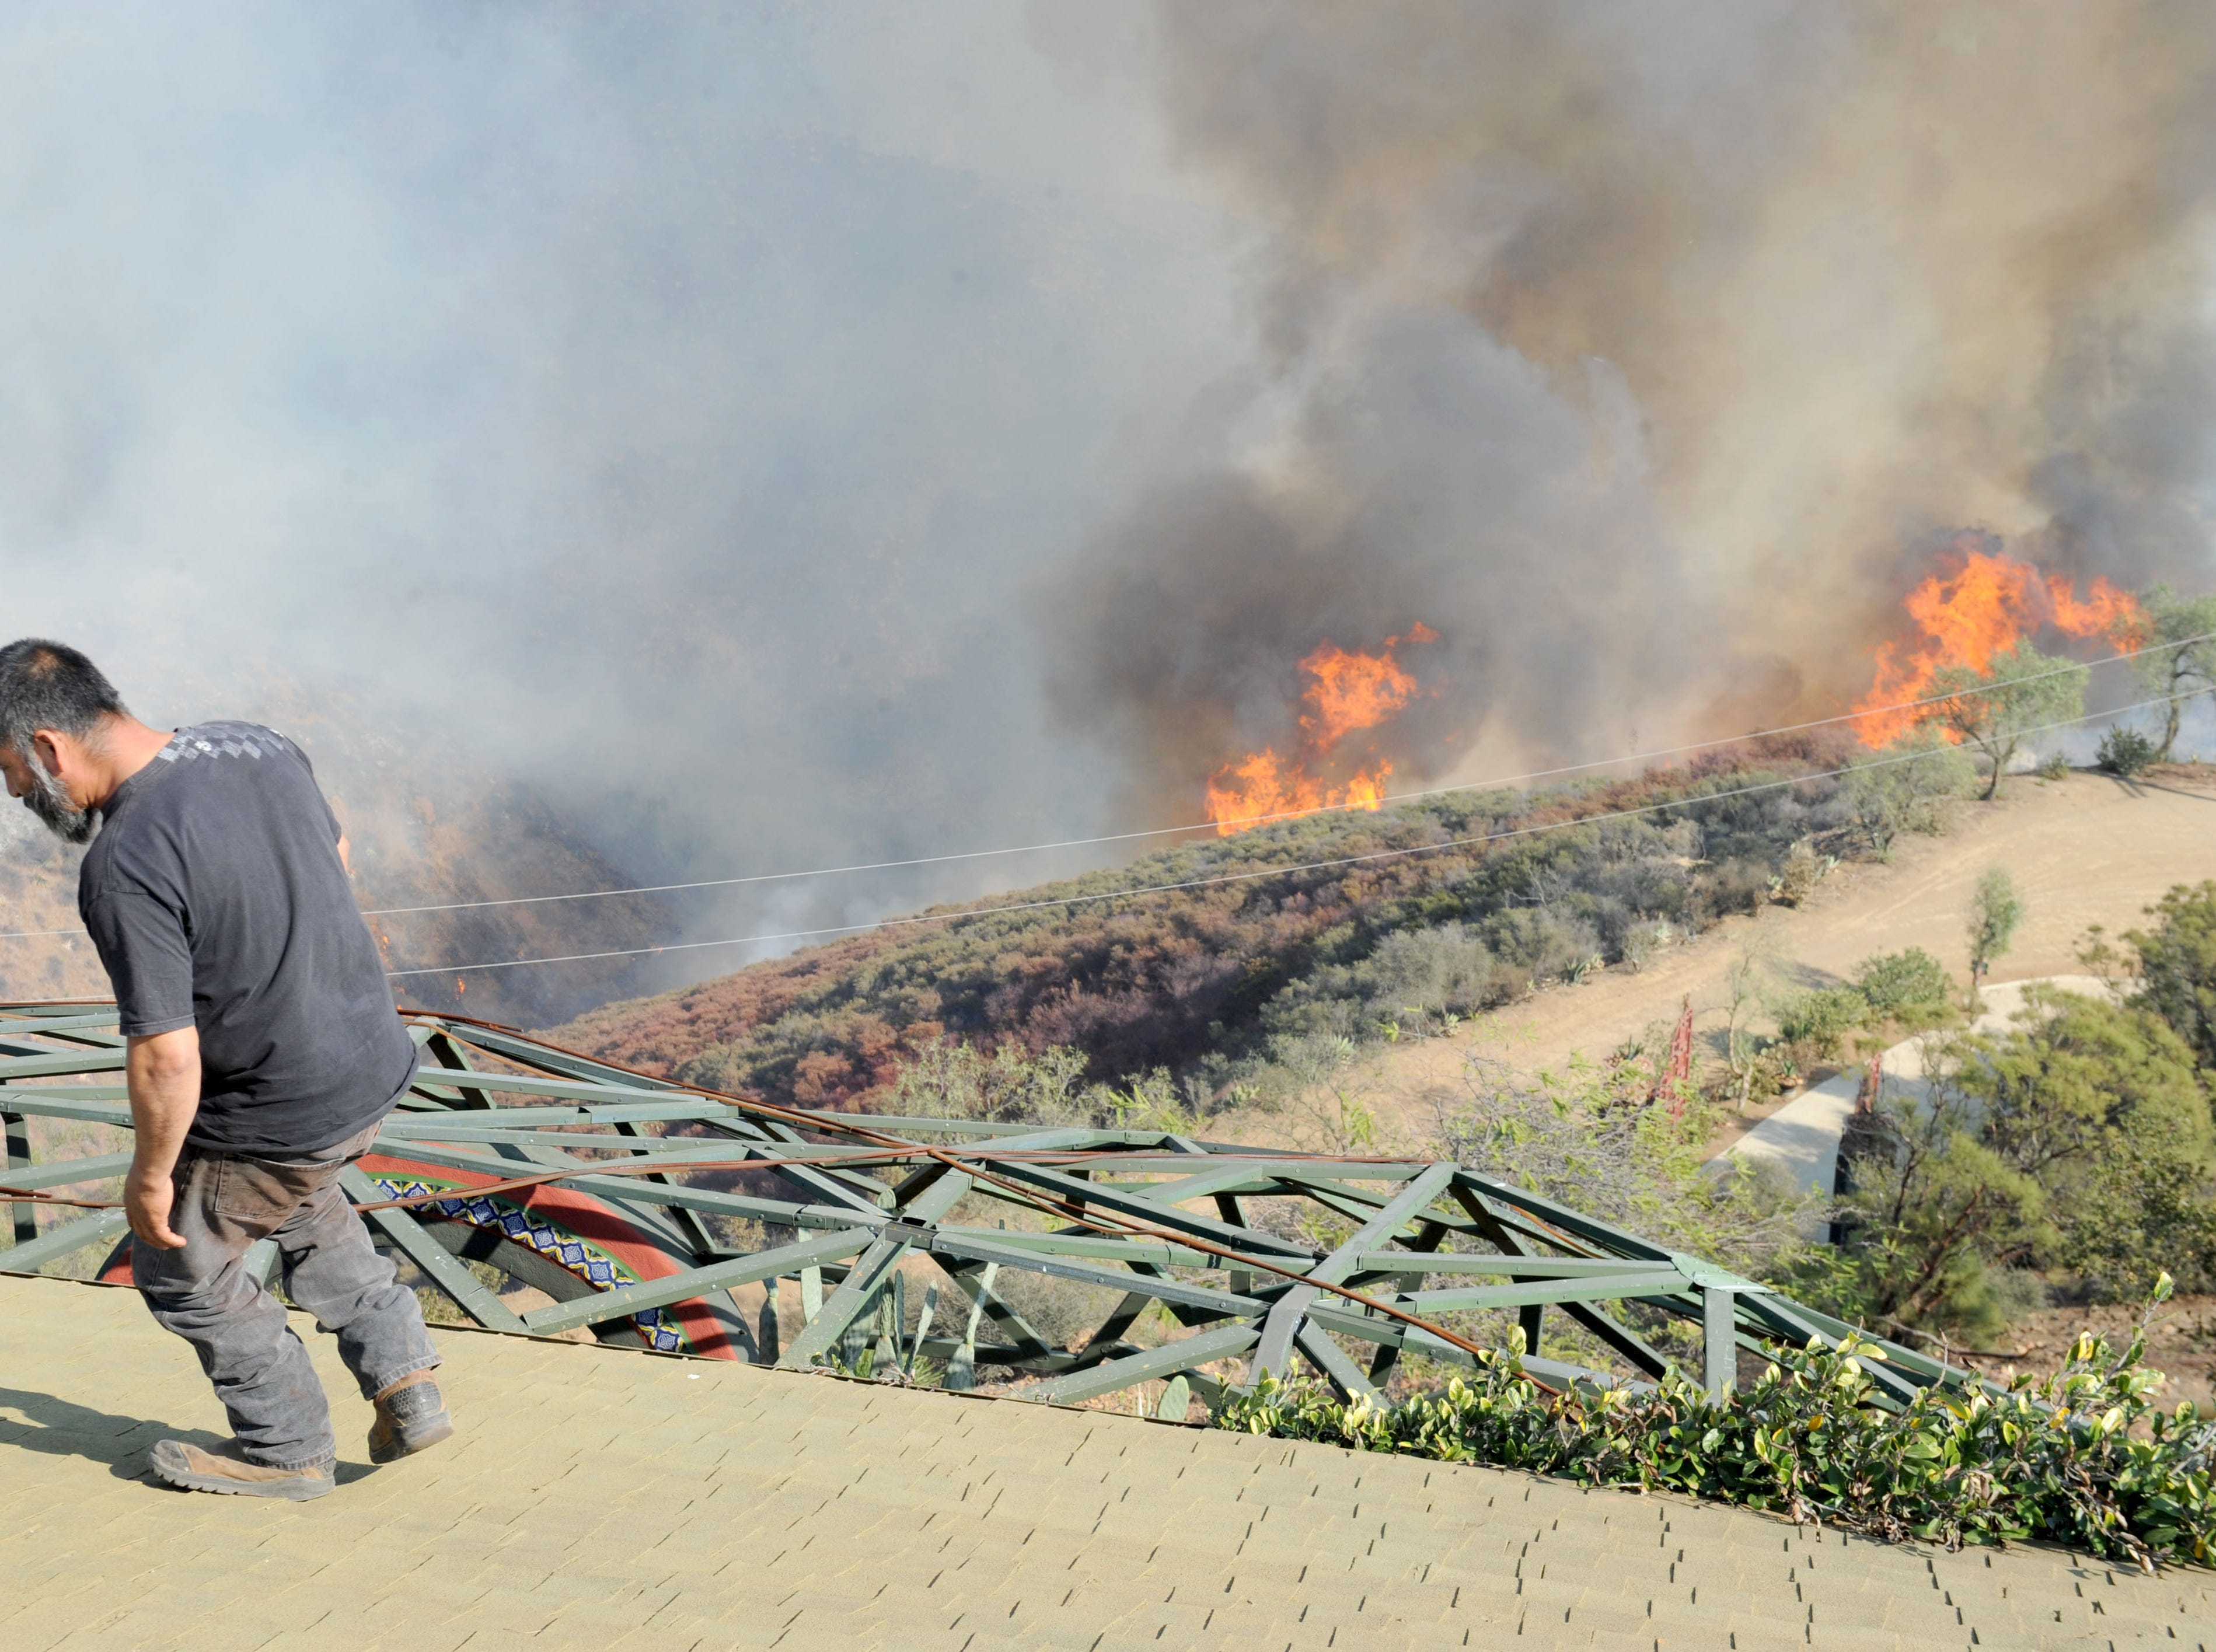 Juan Grenados watches the fire come up the canyon near the house of his friend Rick Mecagni at Mipolomol and Cotharin roads in the mountains of Ventura County. The Woolsey Fire continues to burn in the county.